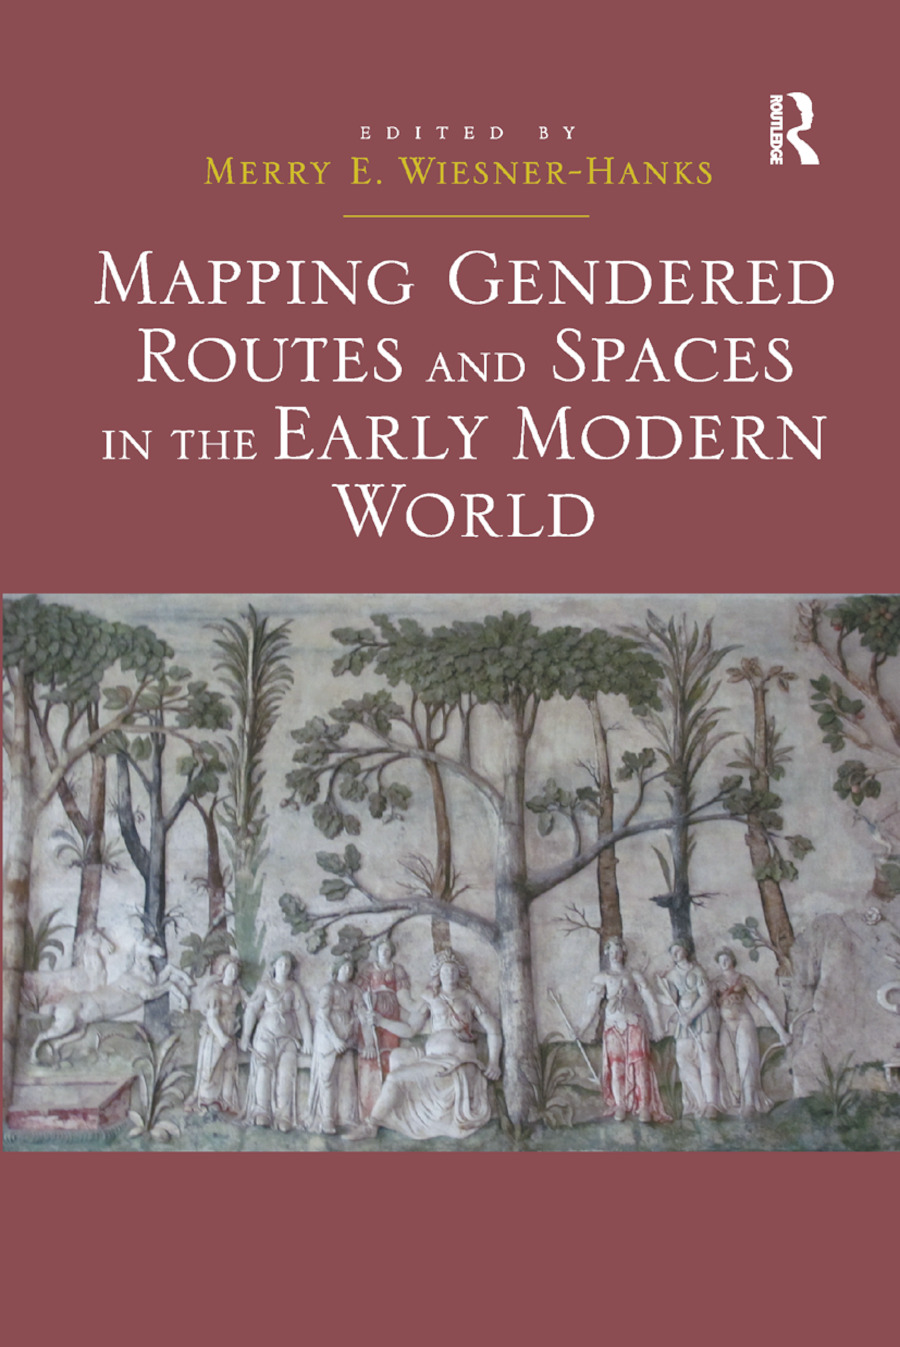 Mapping Gendered Routes and Spaces in the Early Modern World book cover